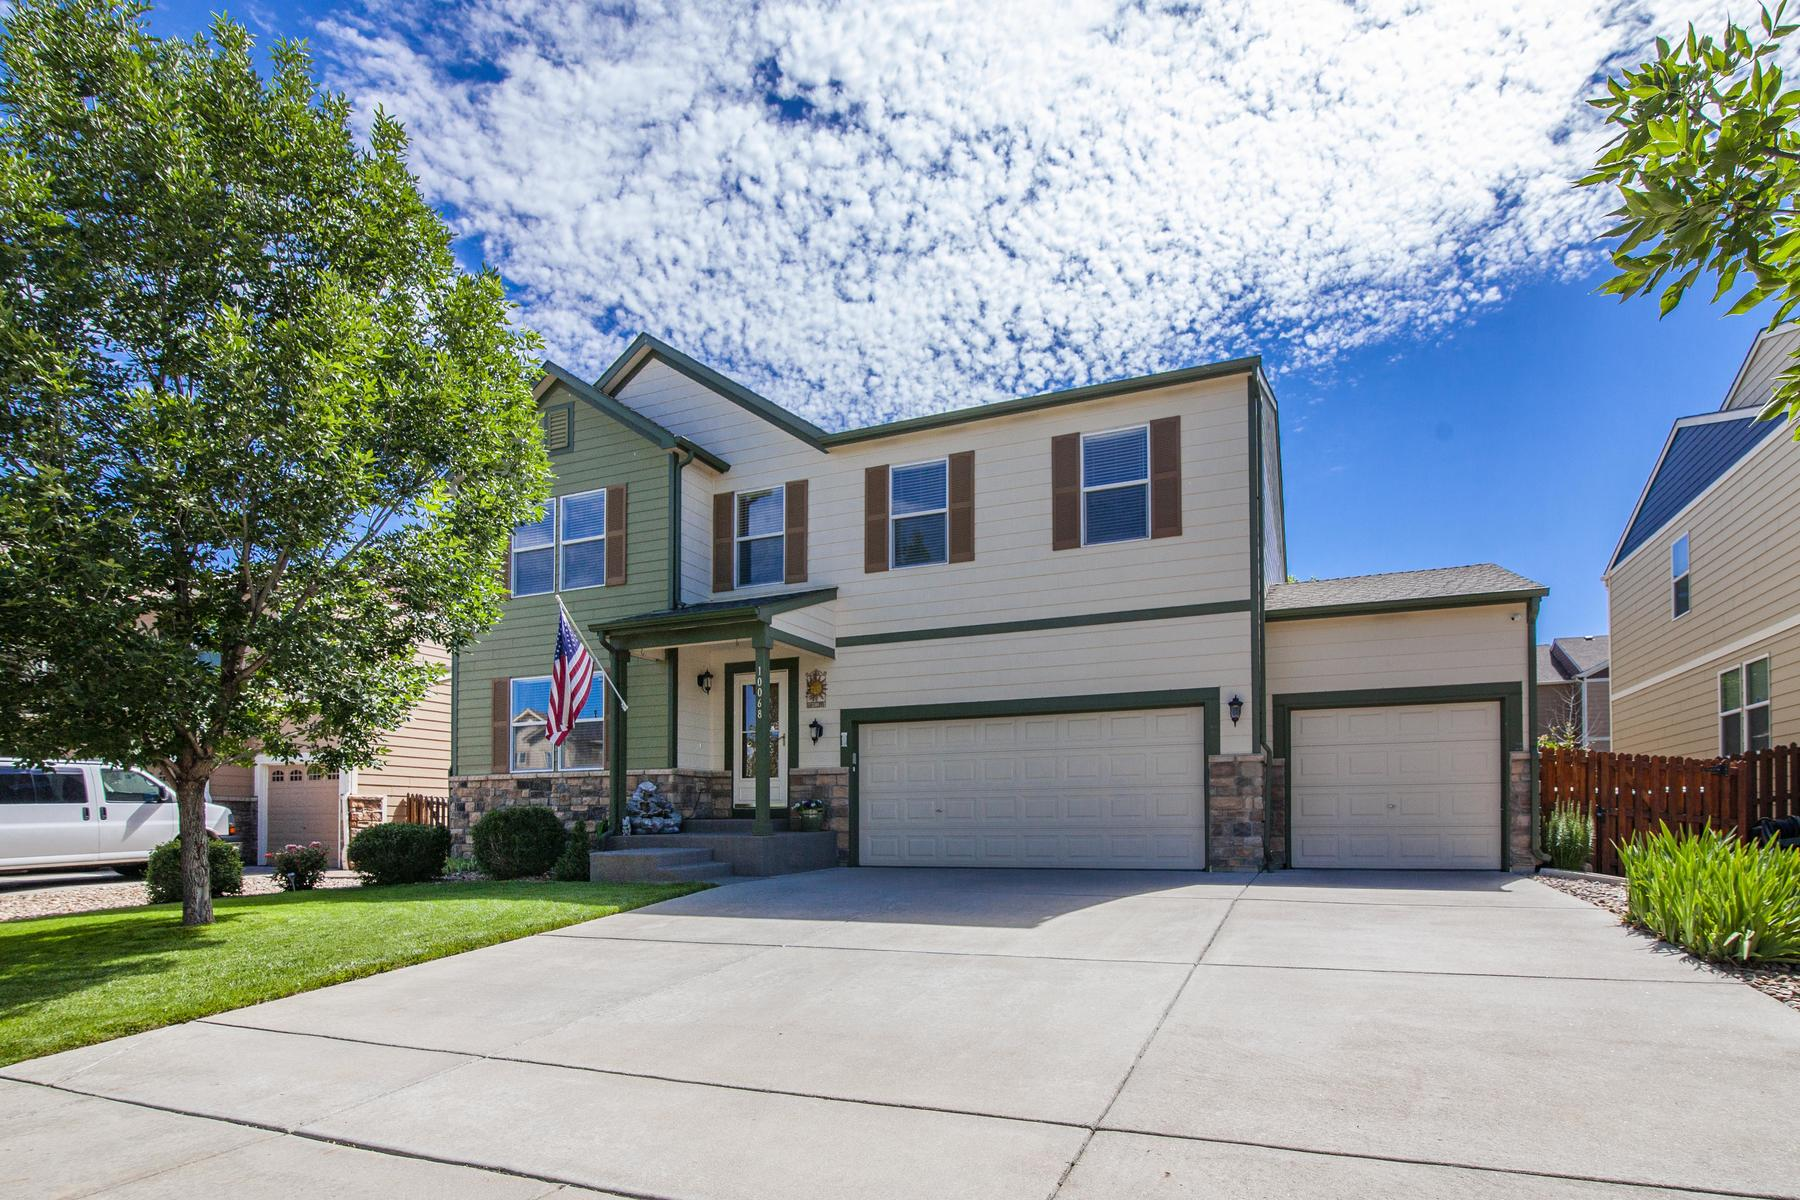 Single Family Homes for Sale at Welcome home to this meticulously maintained and freshly painted Harvest Meadows 10068 Granby St, Commerce City, Colorado 80022 United States